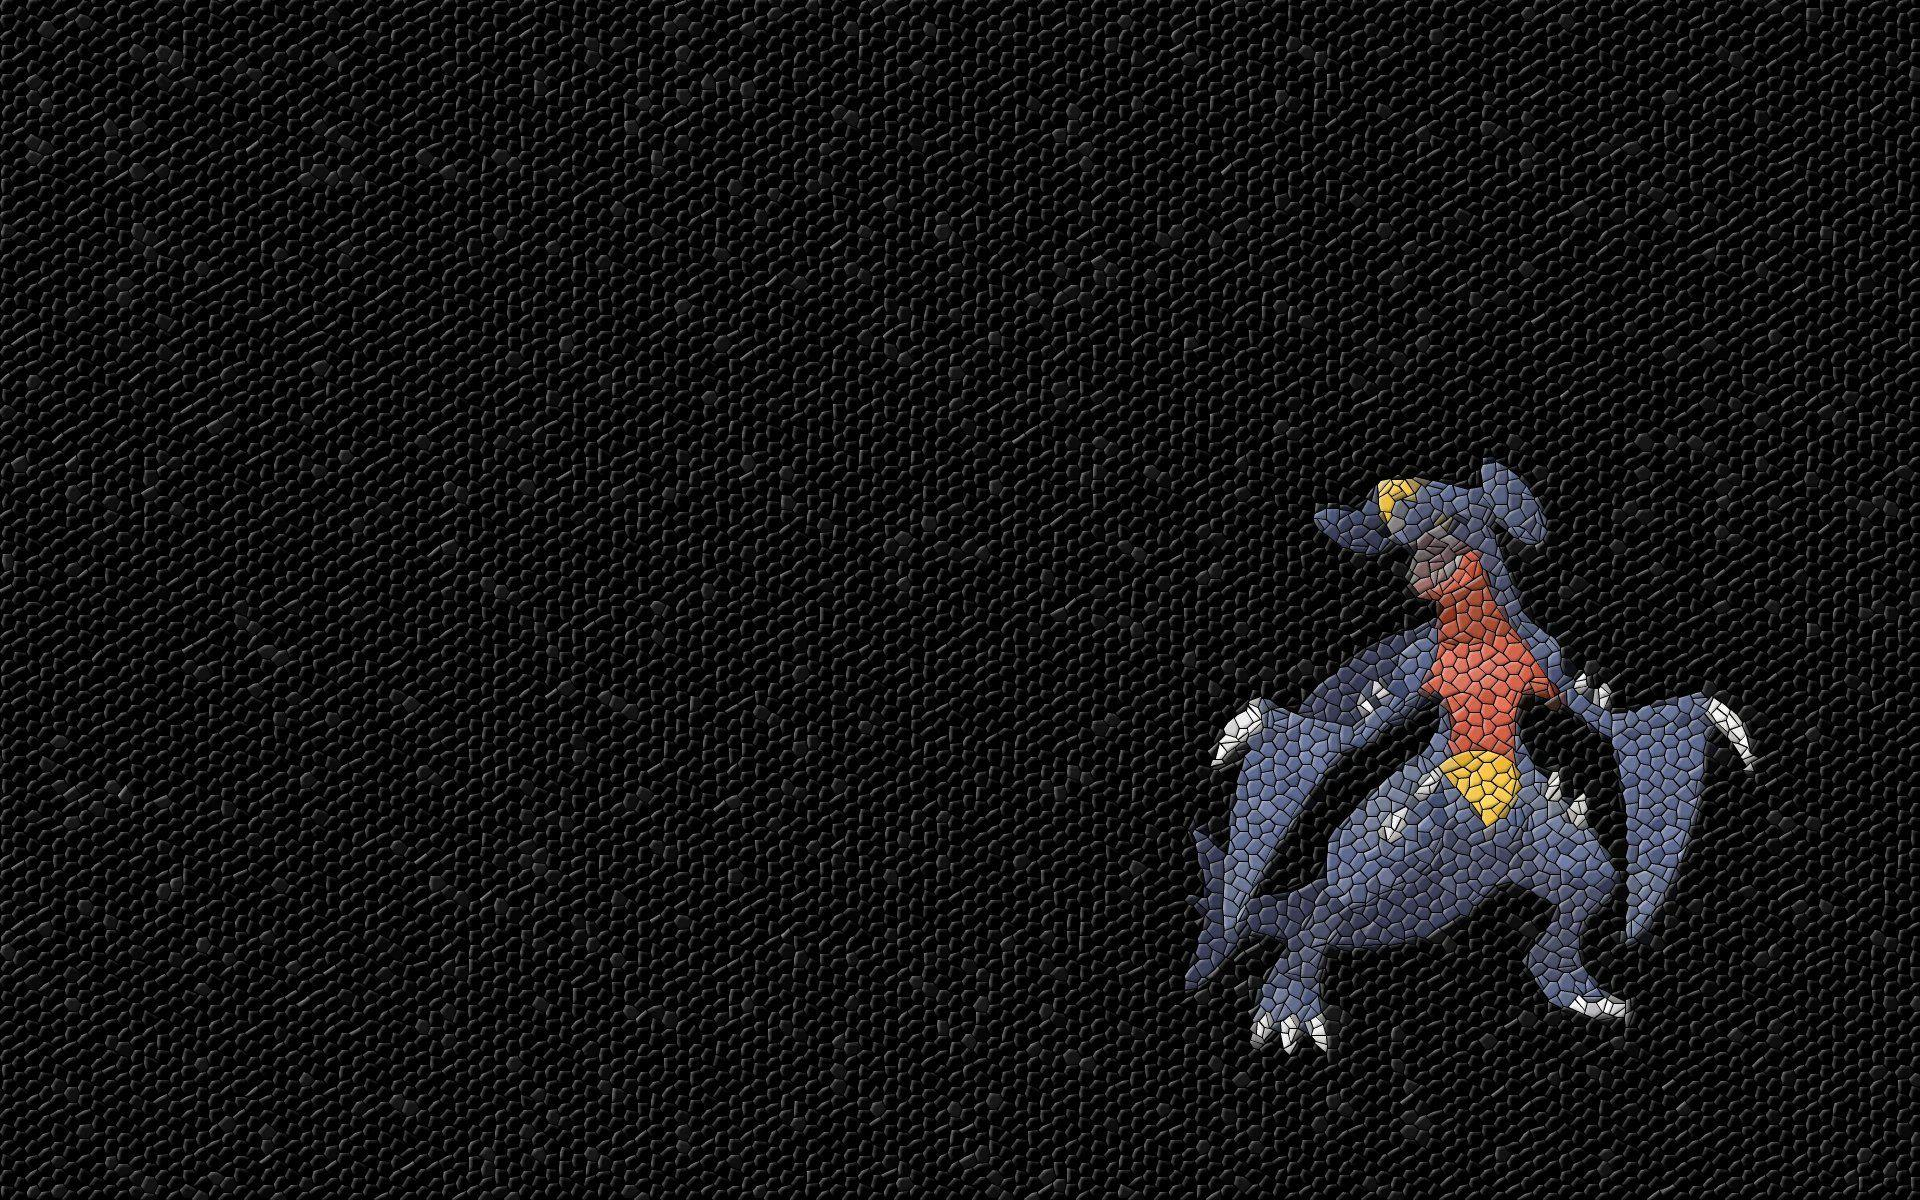 Pokemon mosaic Garchomp wallpapers